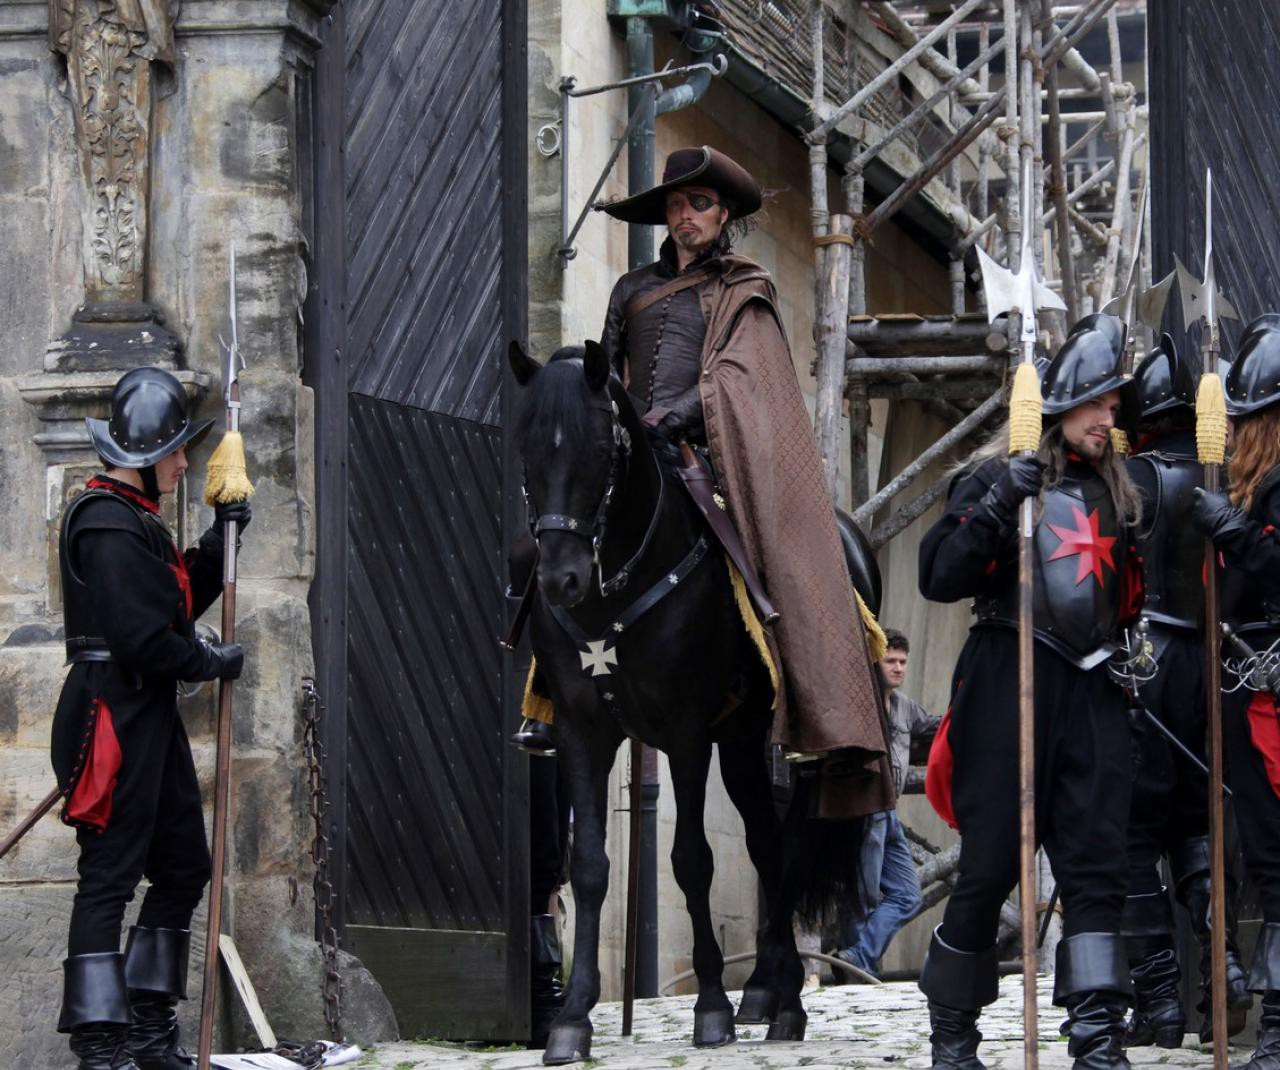 The Three Musketeers in 3D